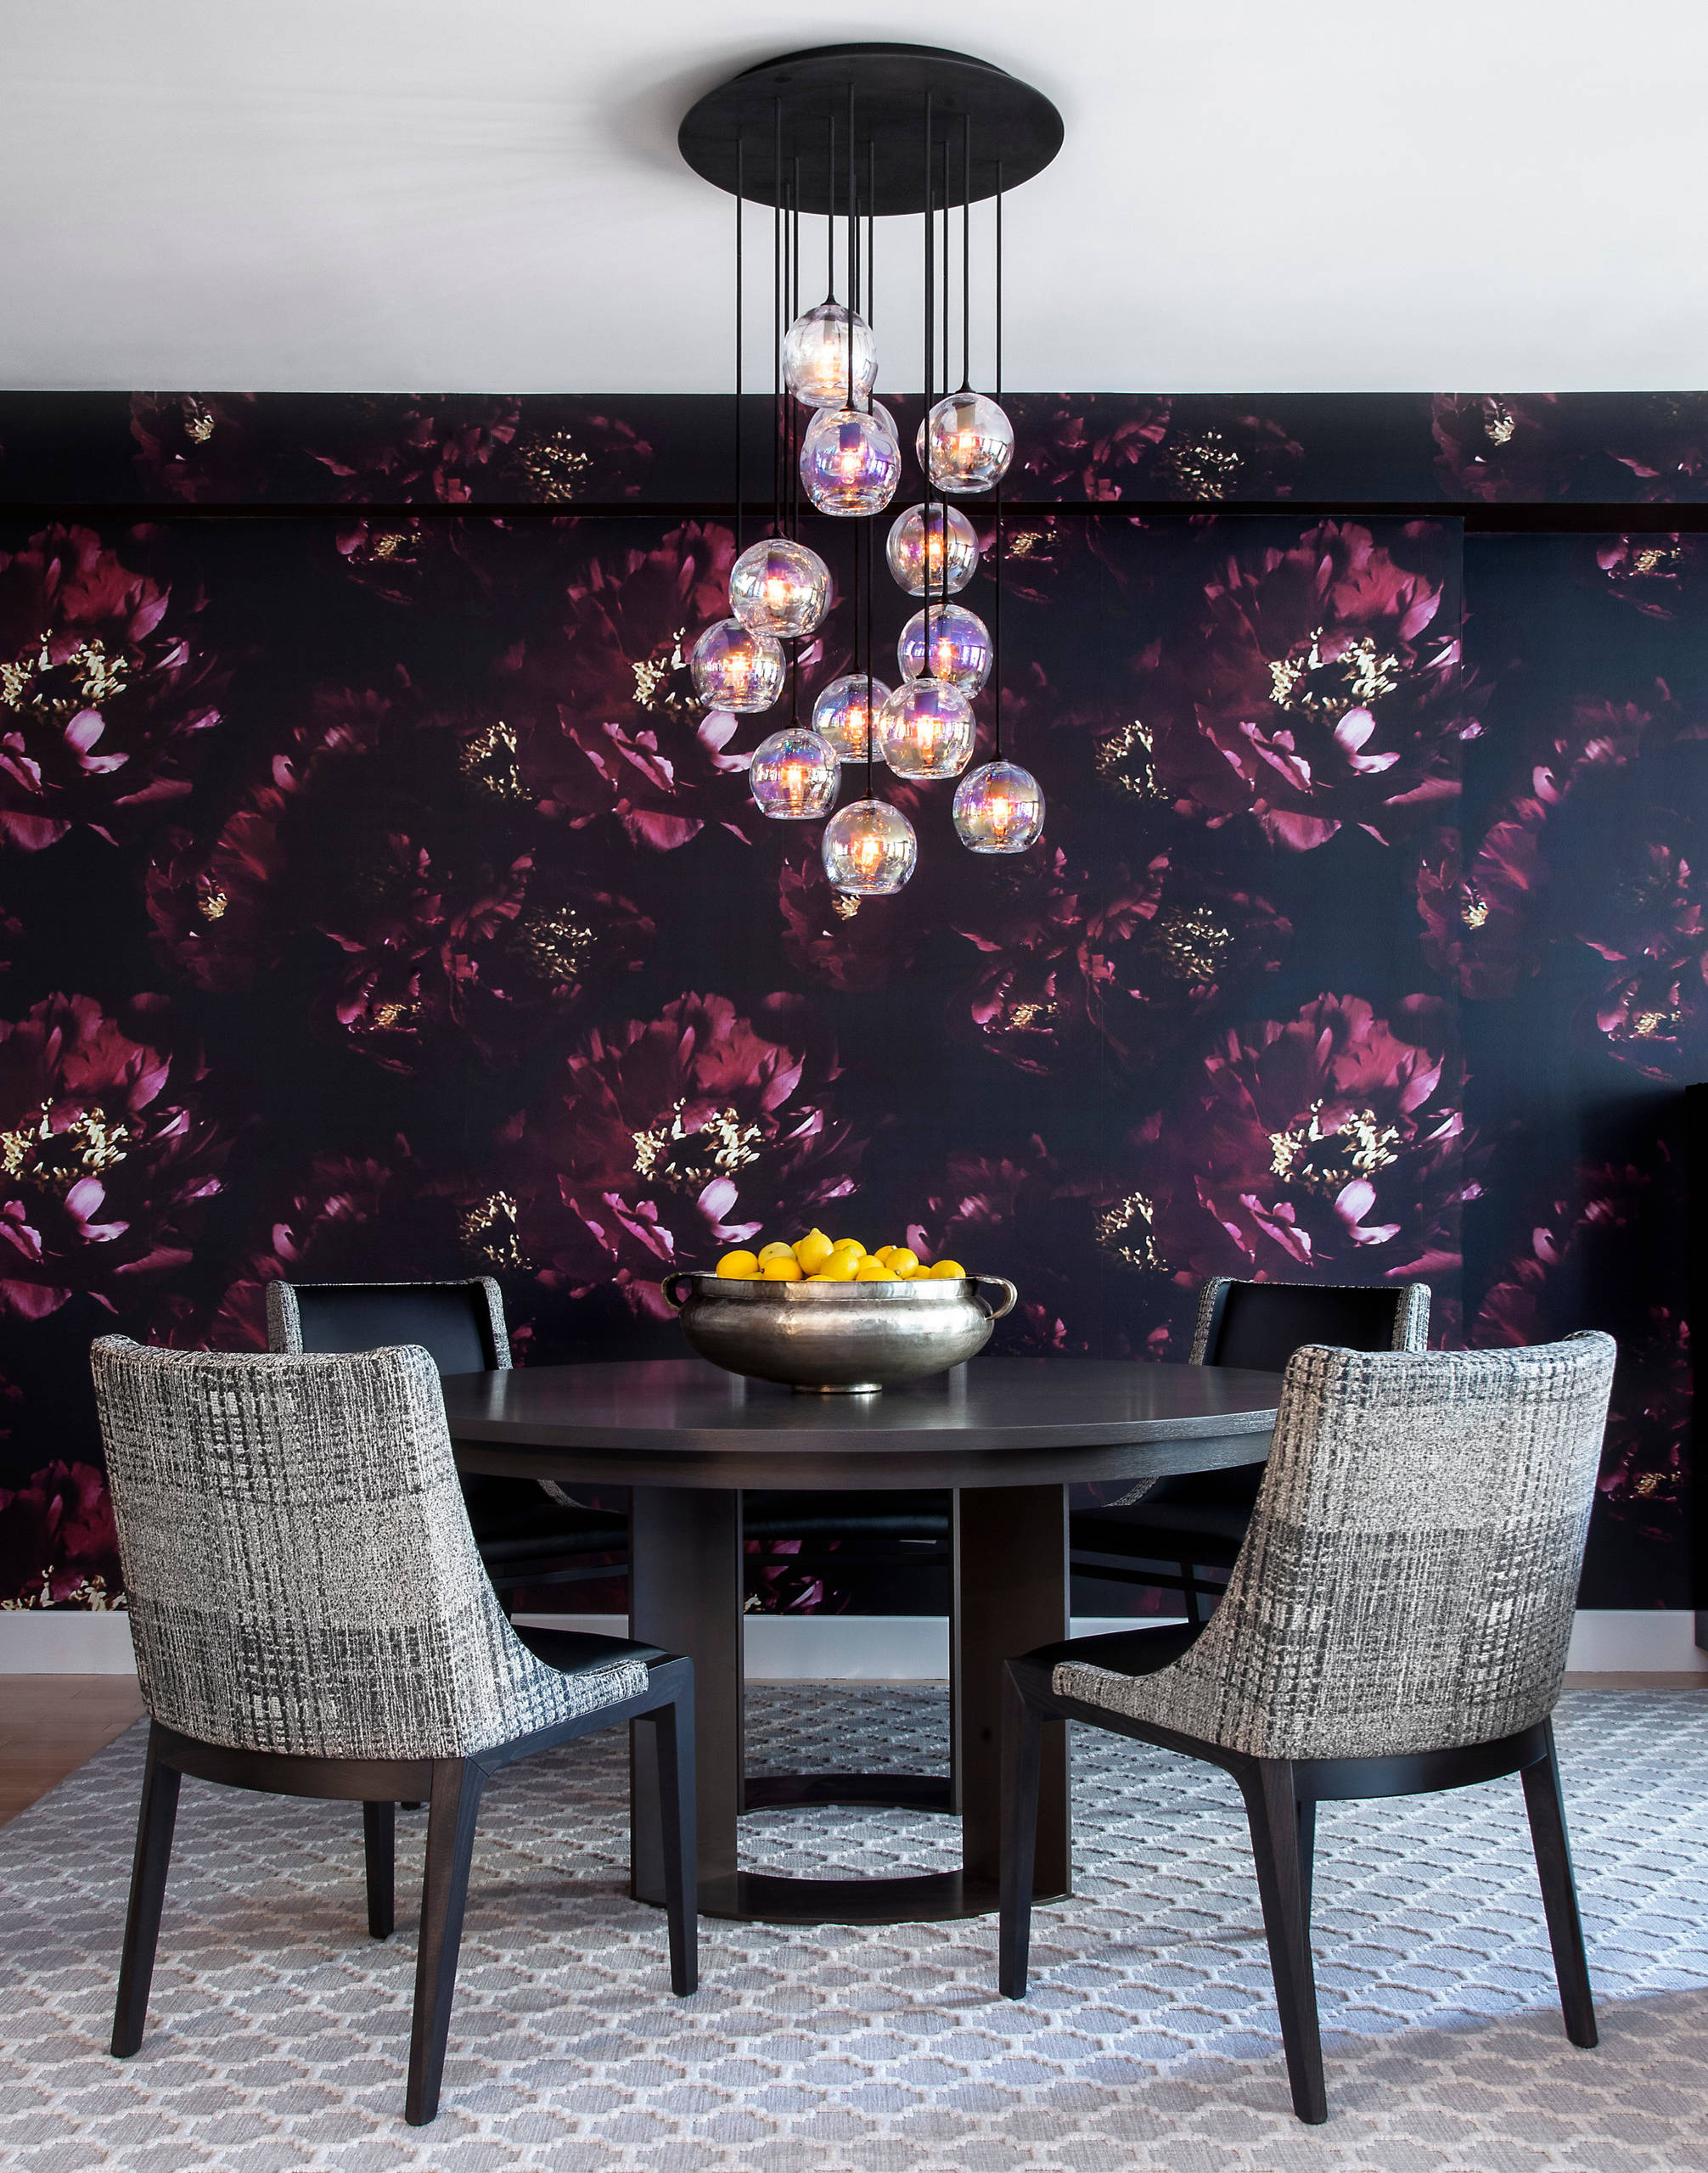 75 Beautiful Carpeted Dining Room Pictures Ideas September 2020 Houzz